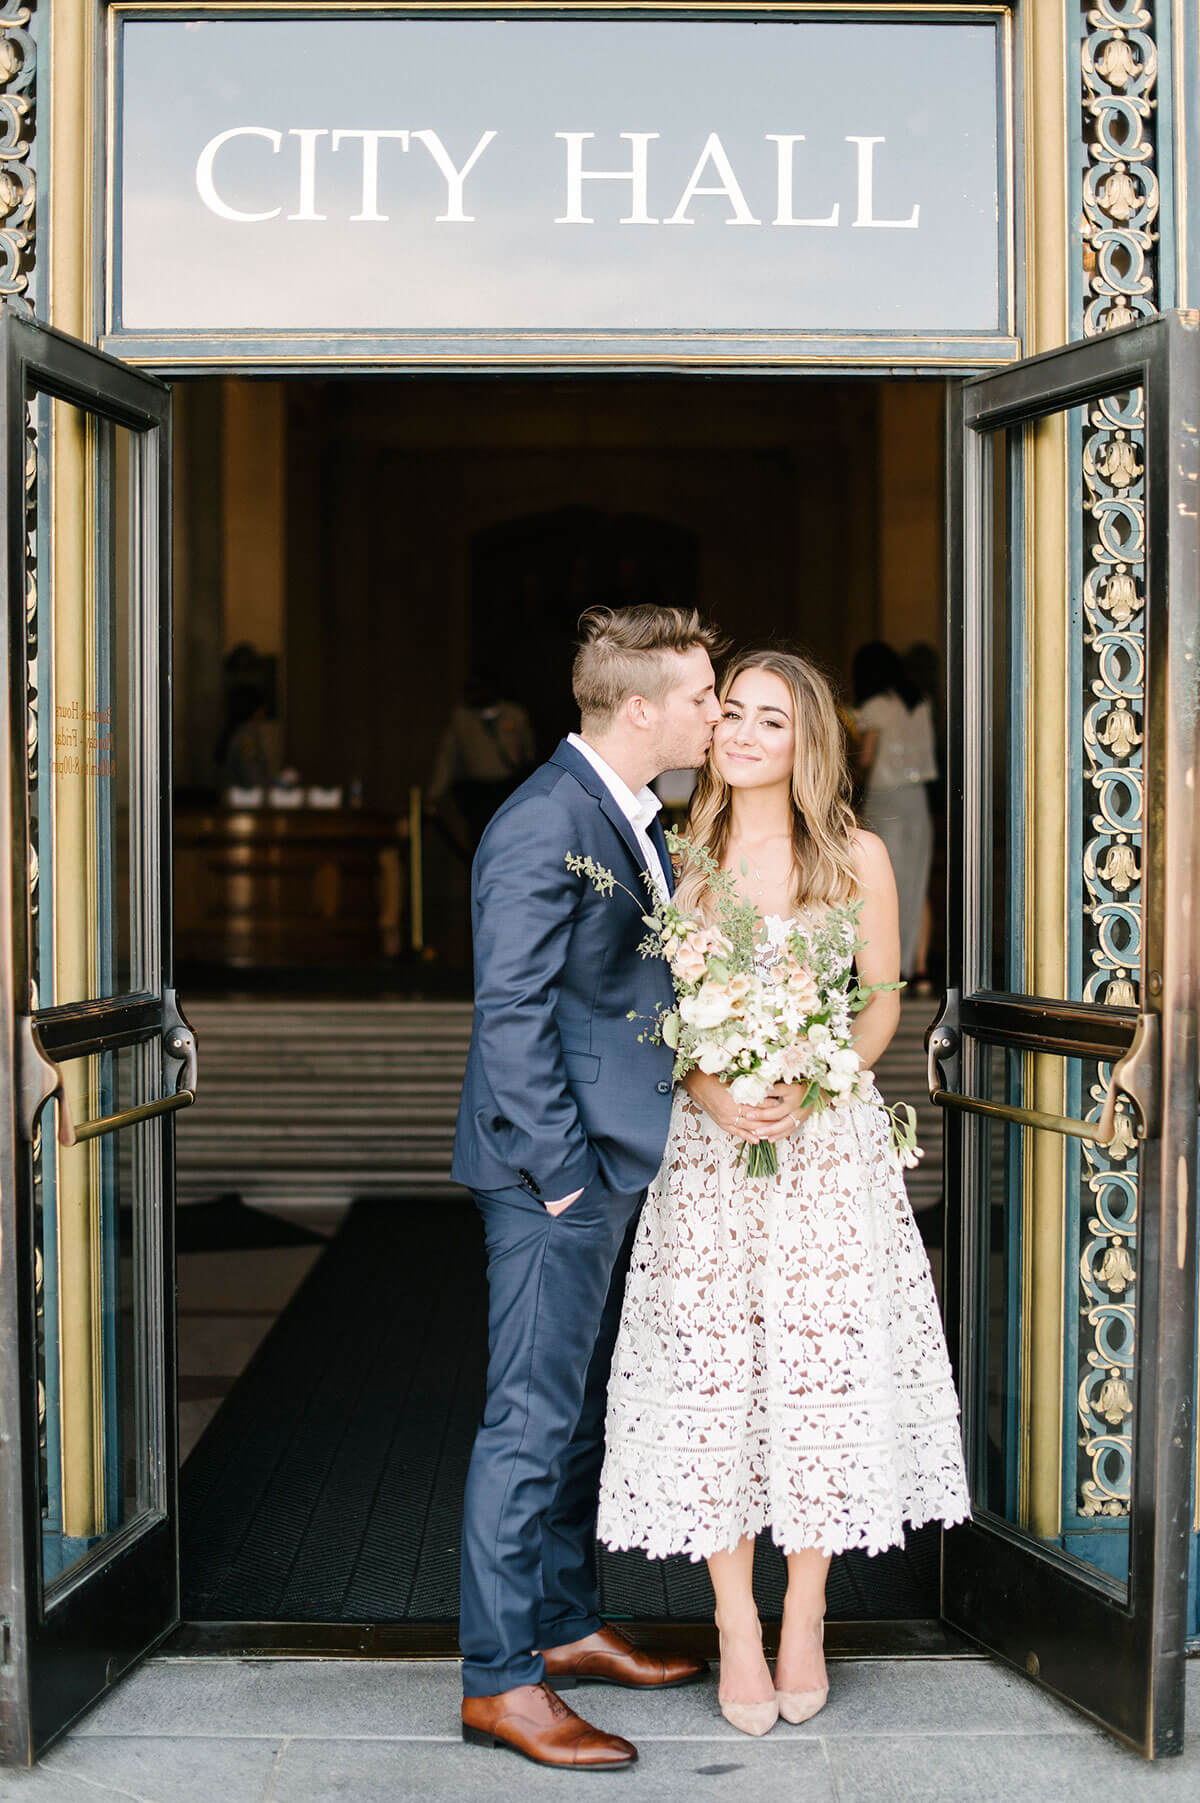 Ten City Hall Wedding Tips - Melanie Duerkopp Photography